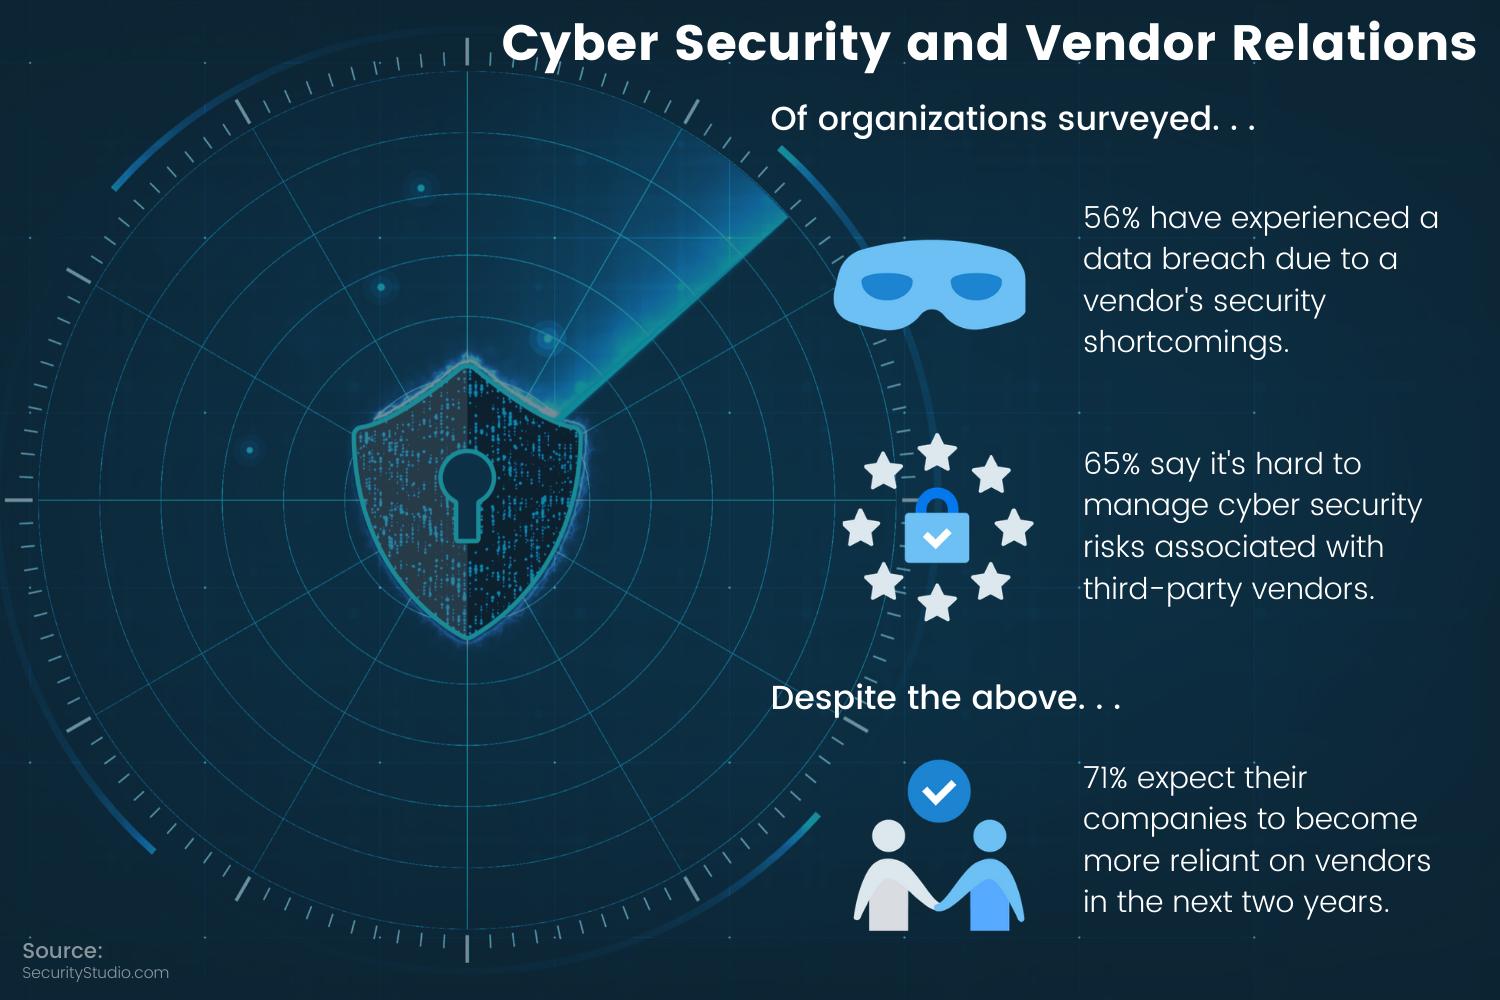 Cyber Security and Vendor Relations Info-graphic